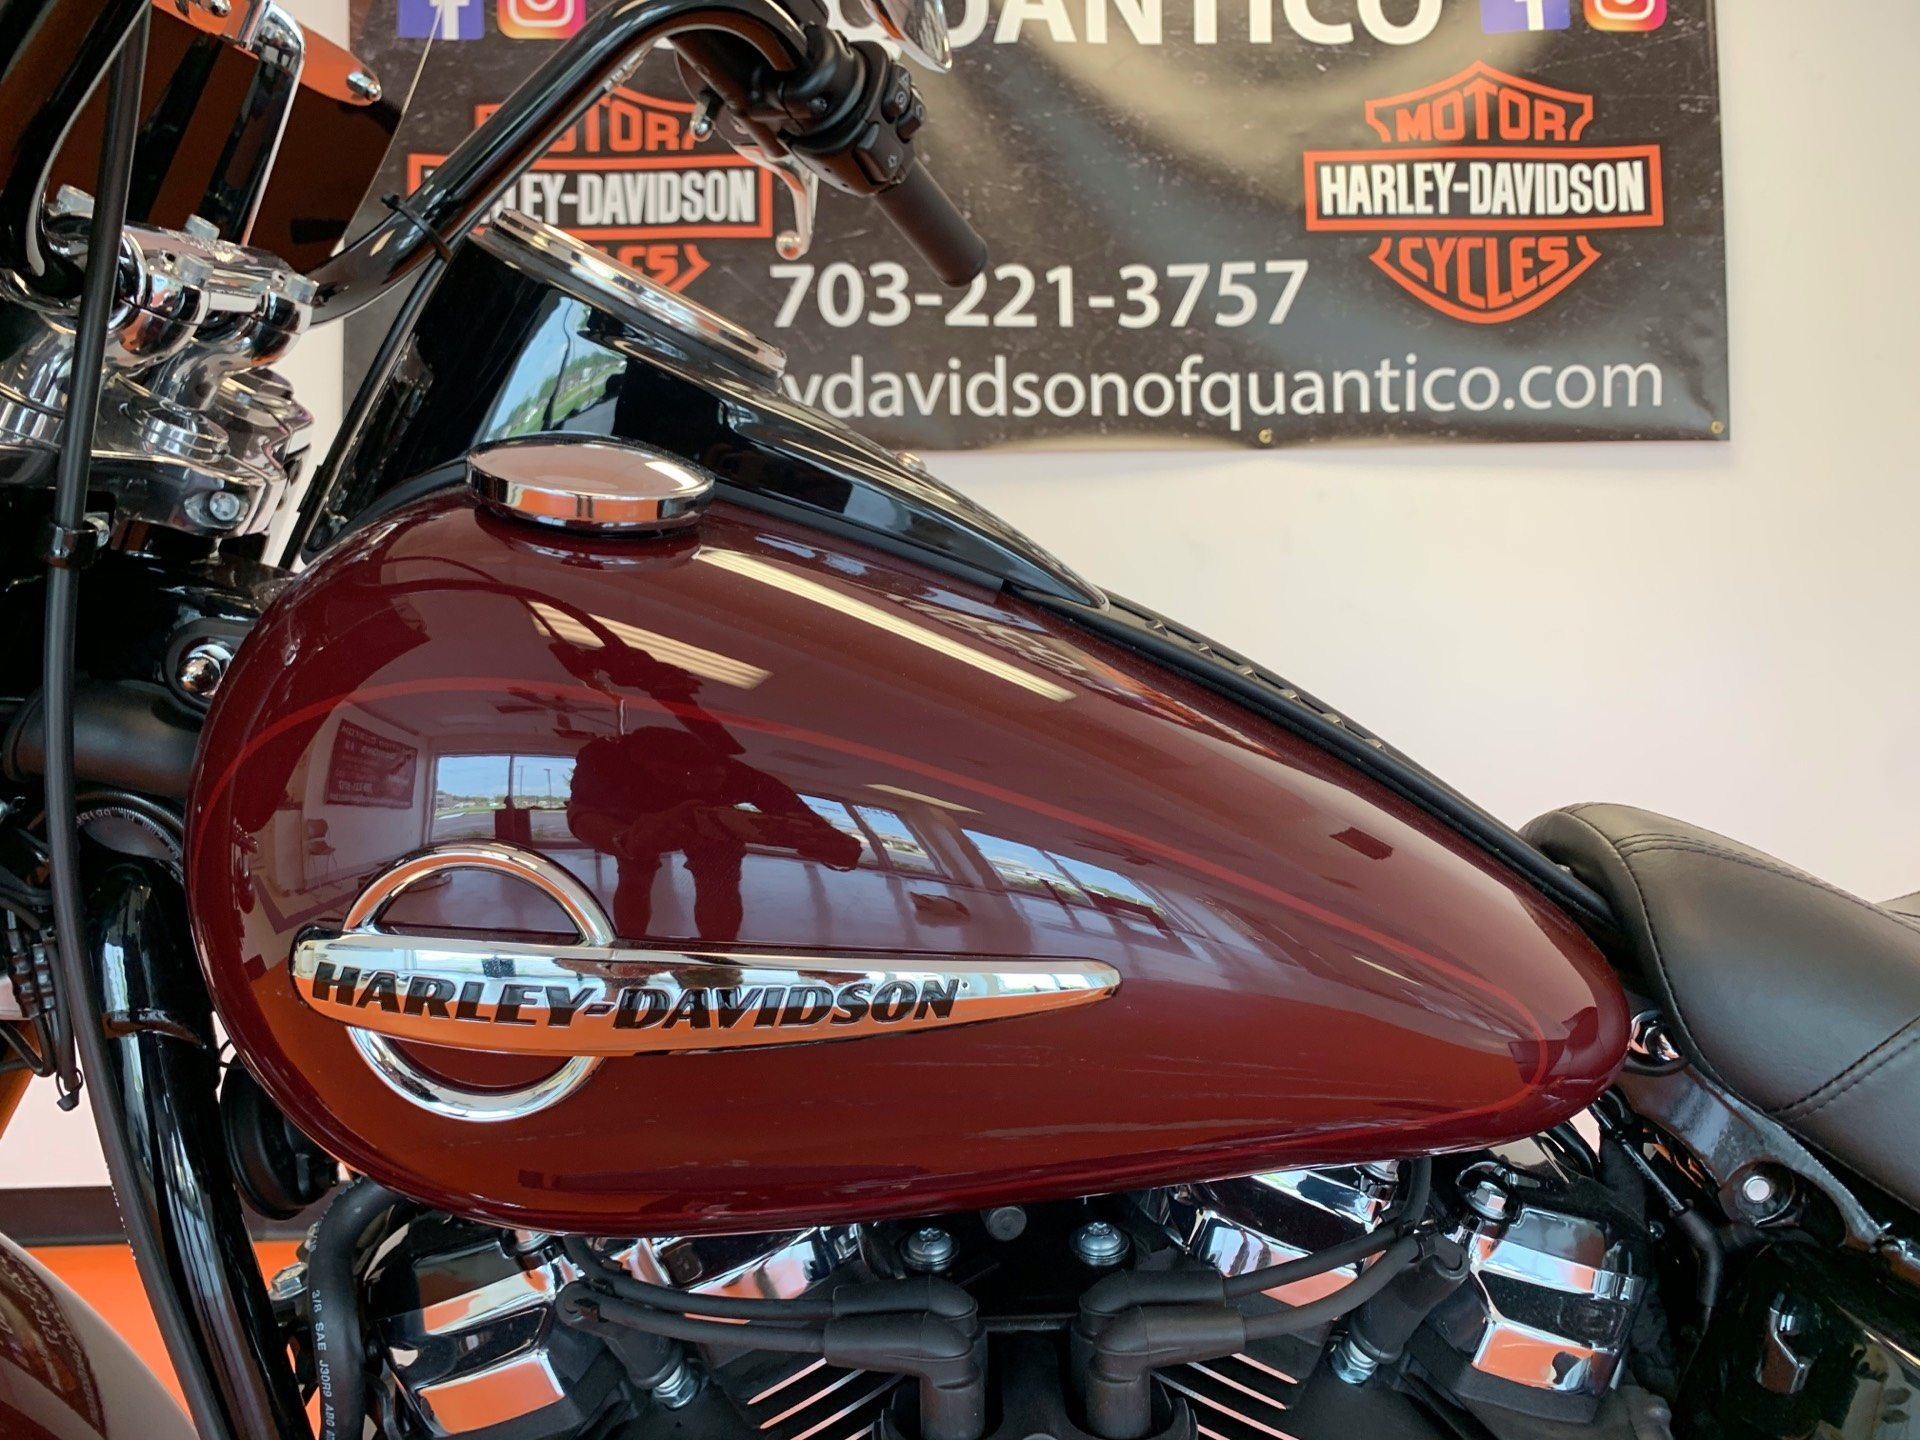 2020 Harley-Davidson Heritage Classic 114 in Dumfries, Virginia - Photo 15